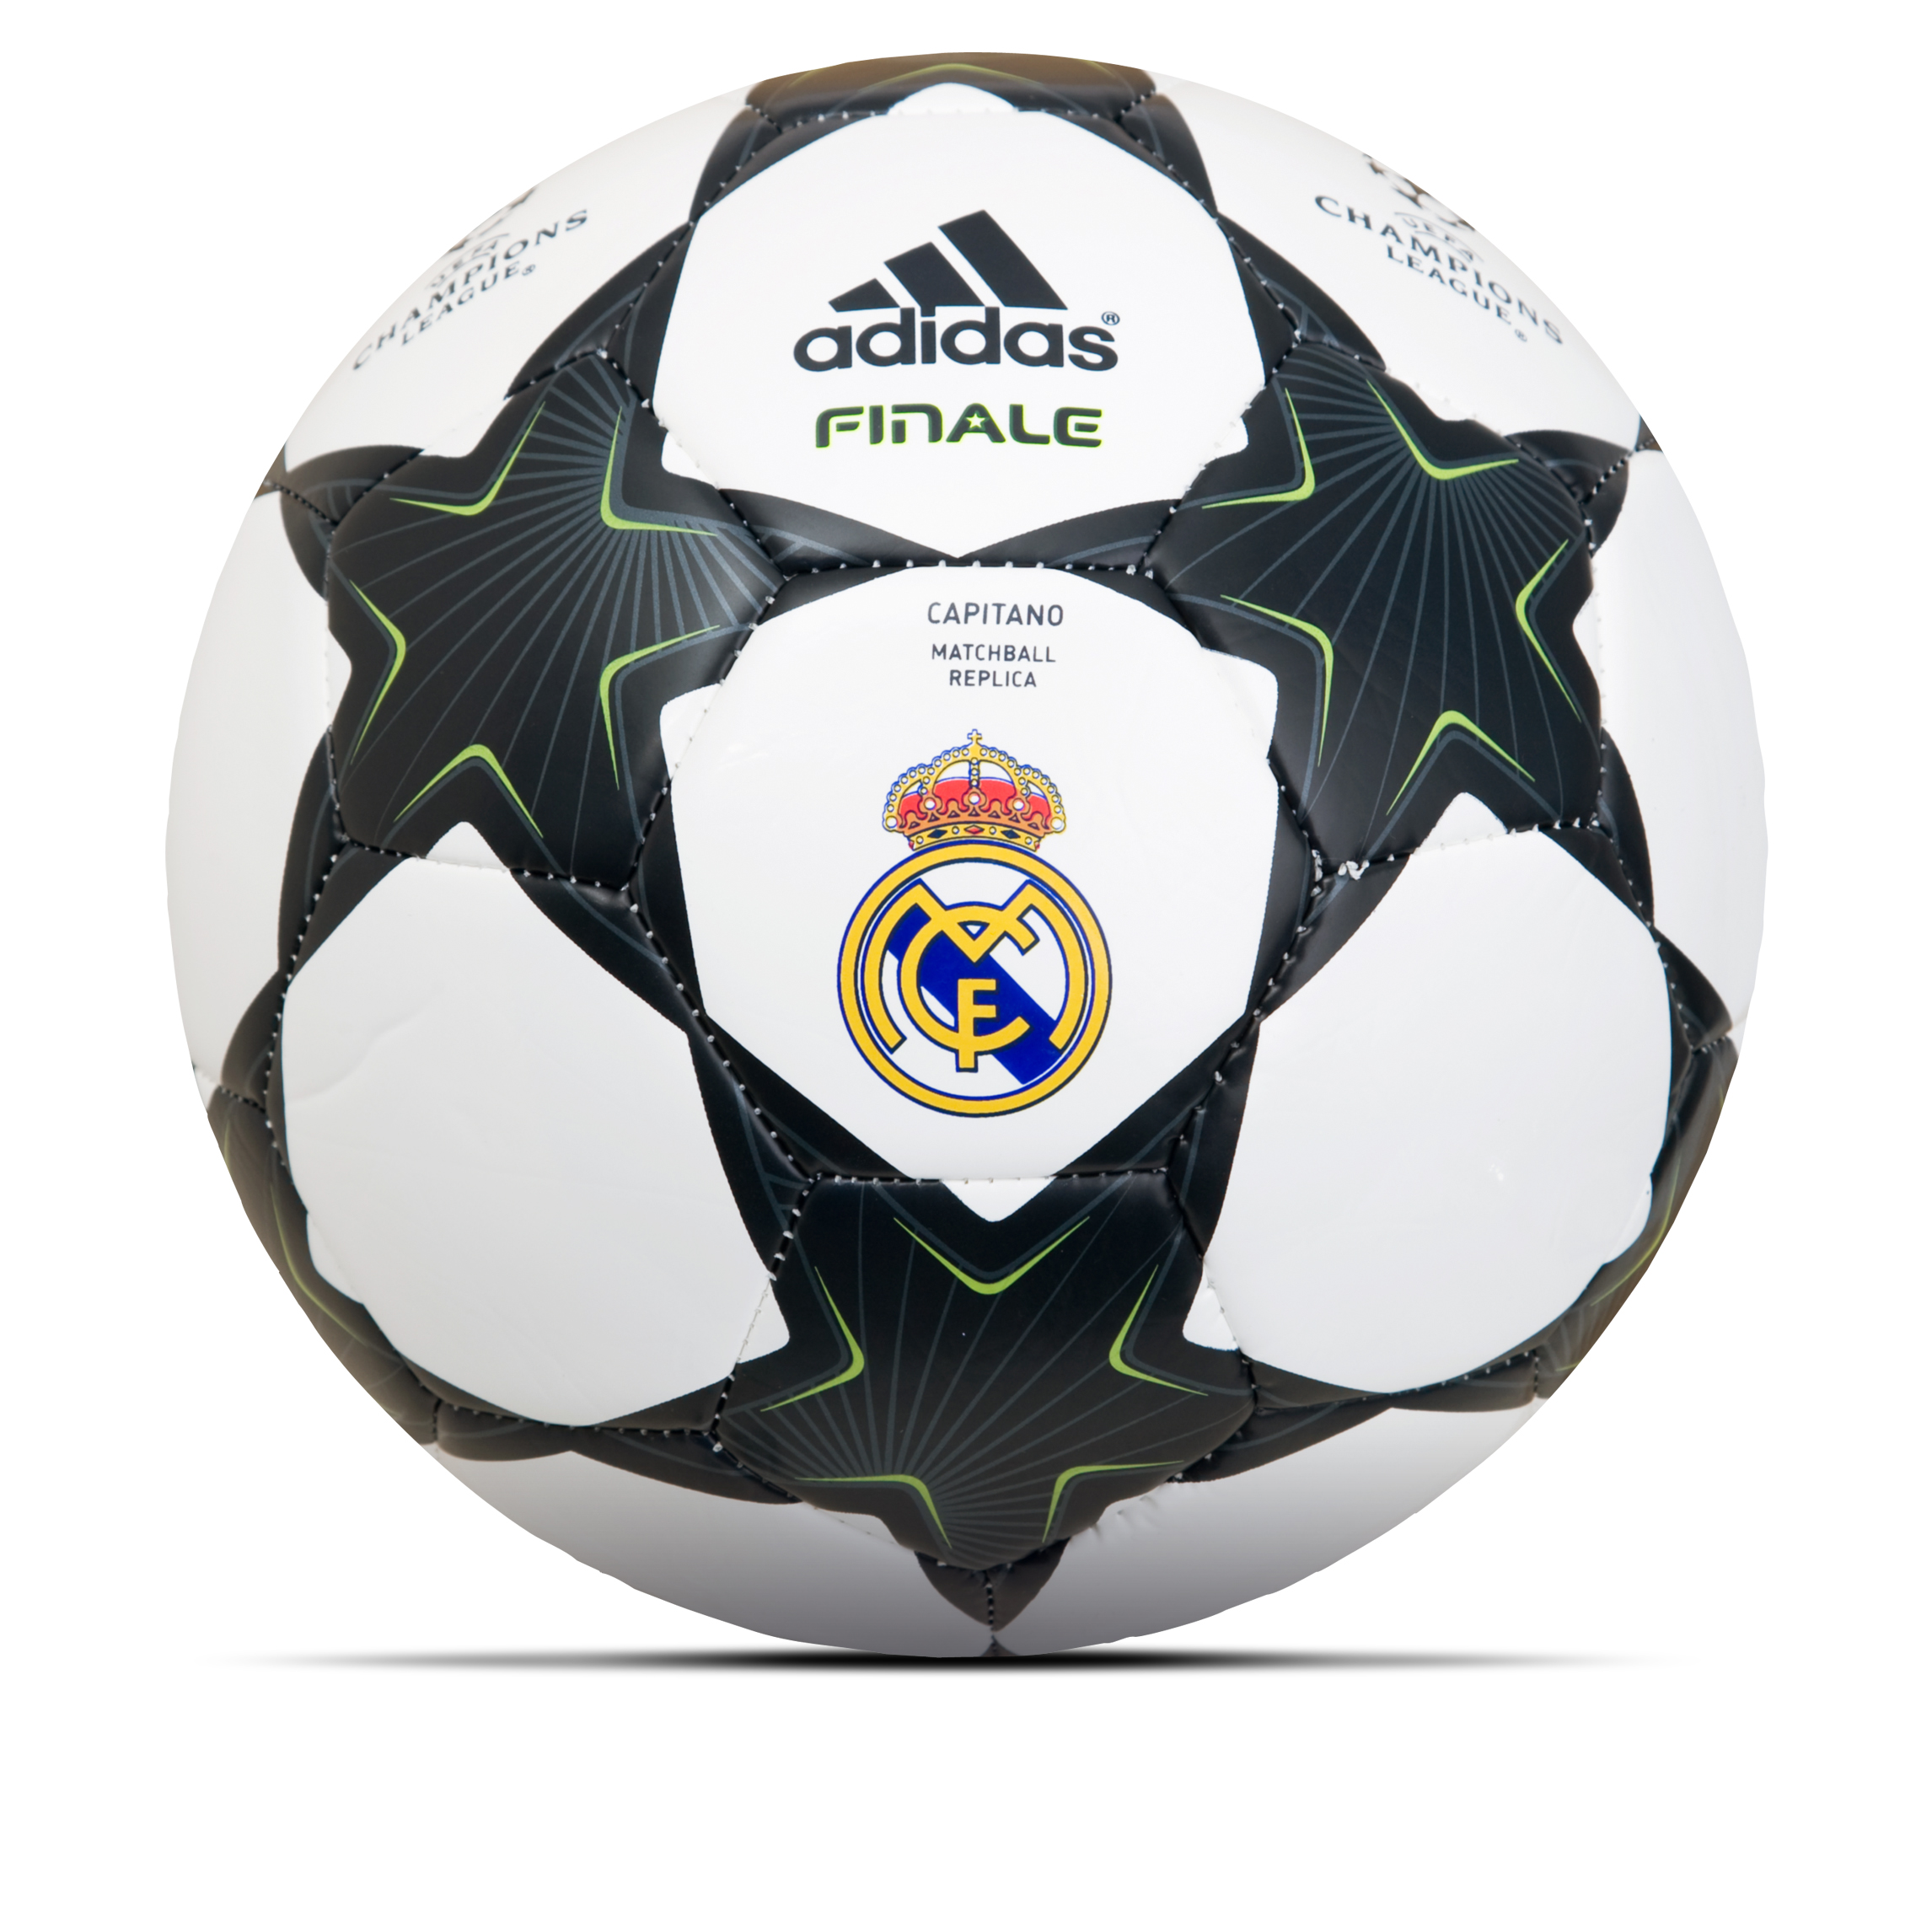 adidas Finale 10 Capitano Real Madrid Football - White